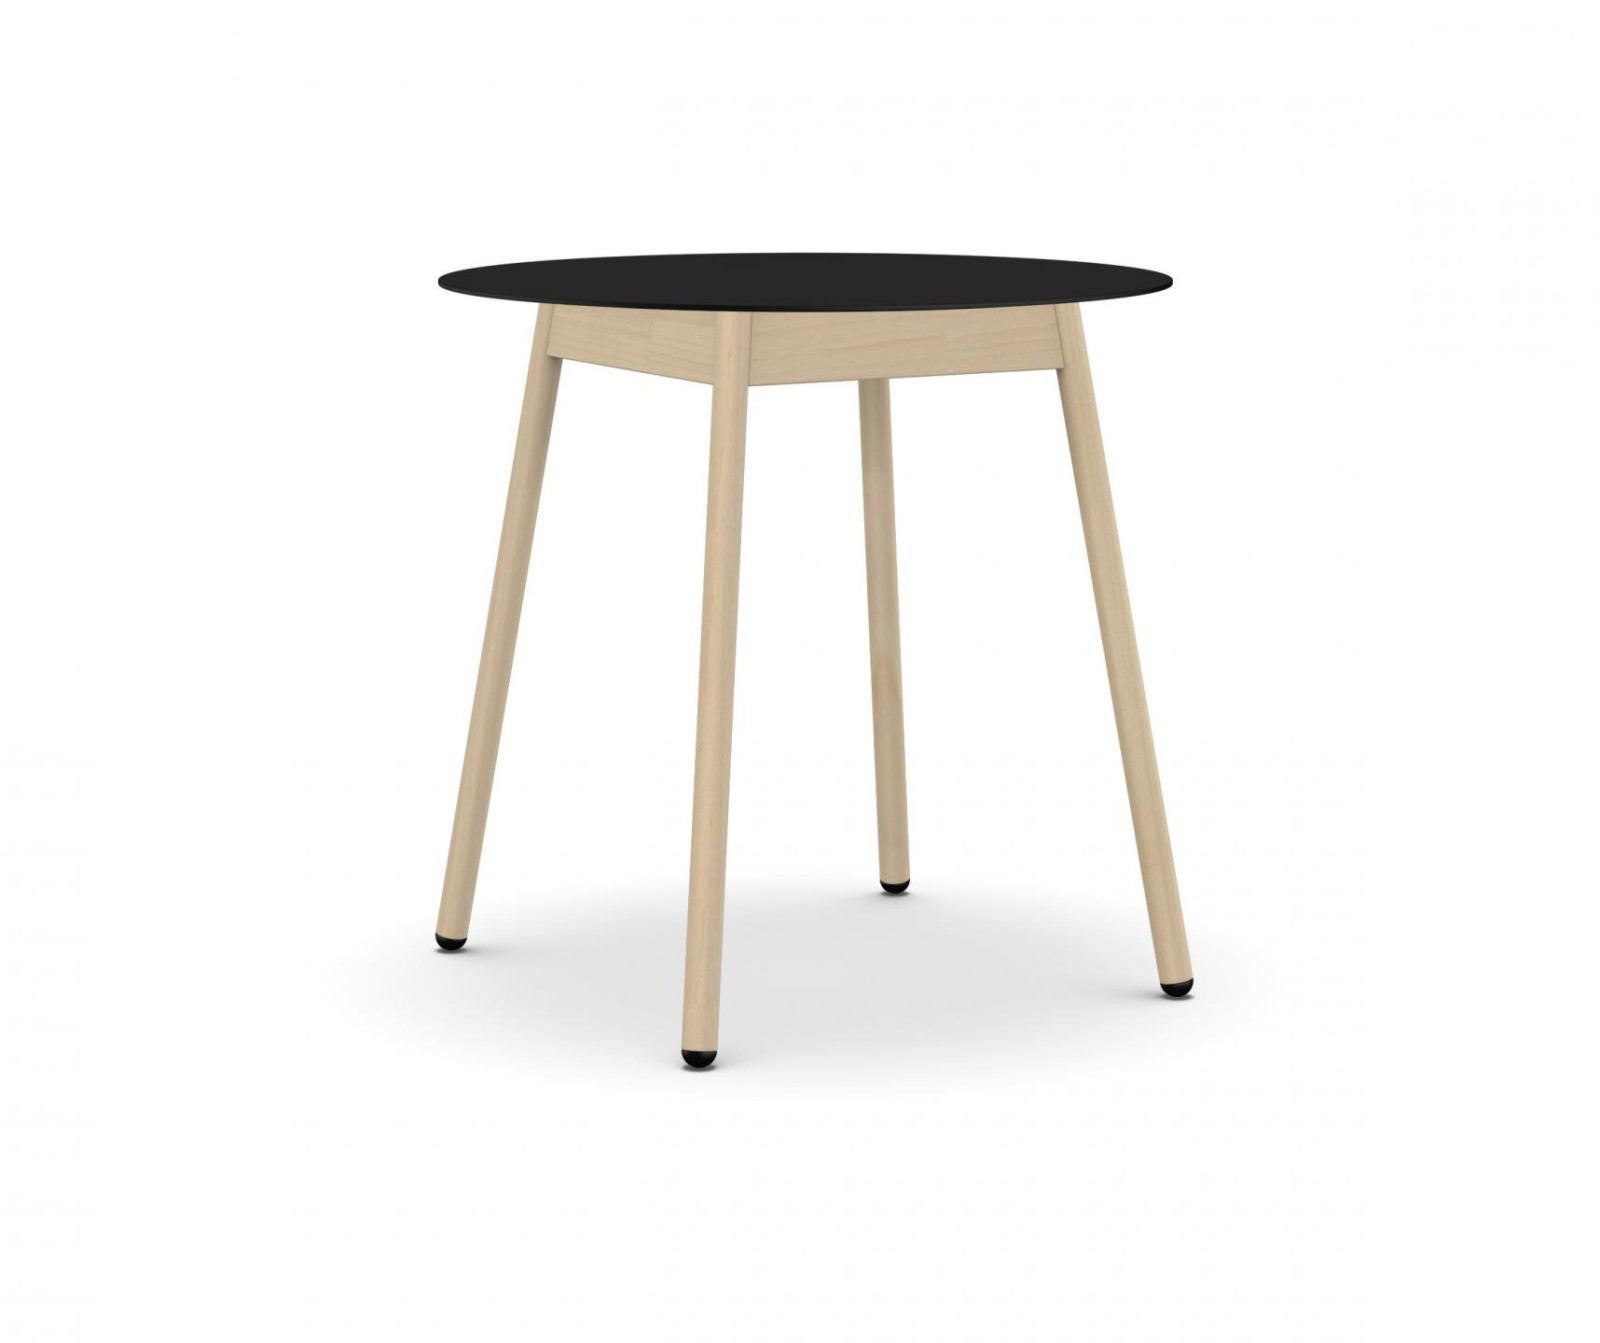 BCN Round Dining Table - 4 Legs Solid beech, Black laminate, H100 x D78